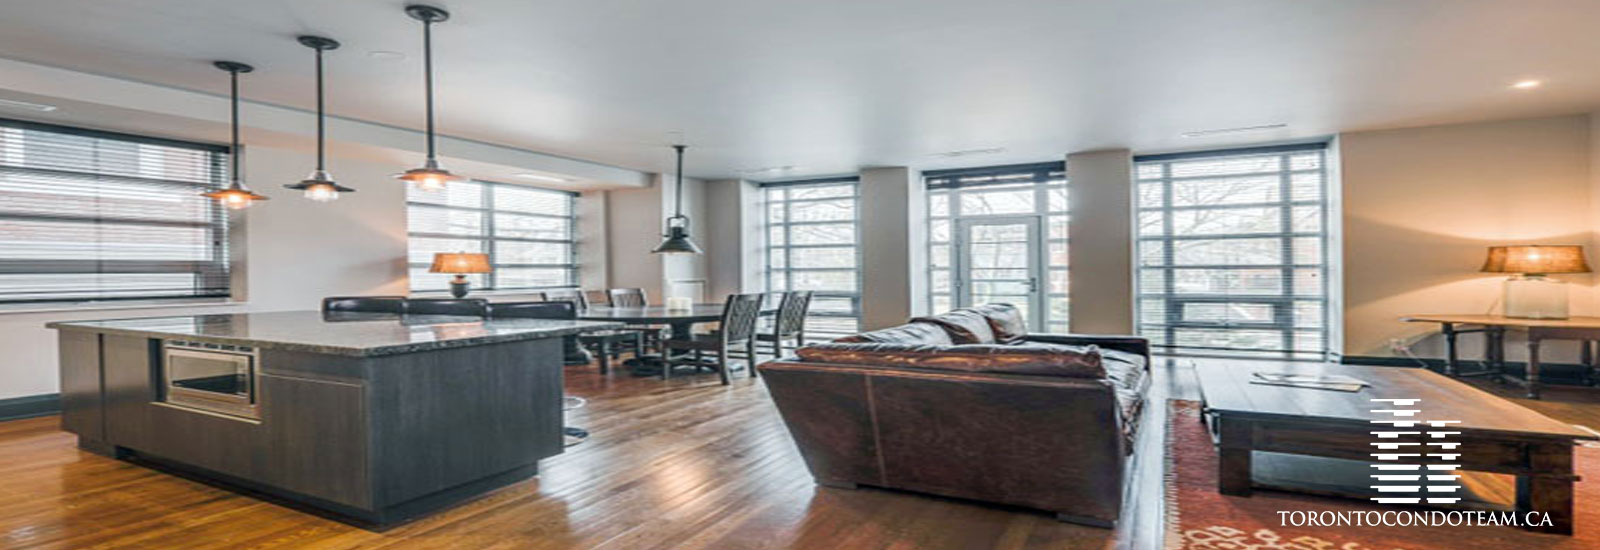 391 Brunswick Avenue Condos For Sale